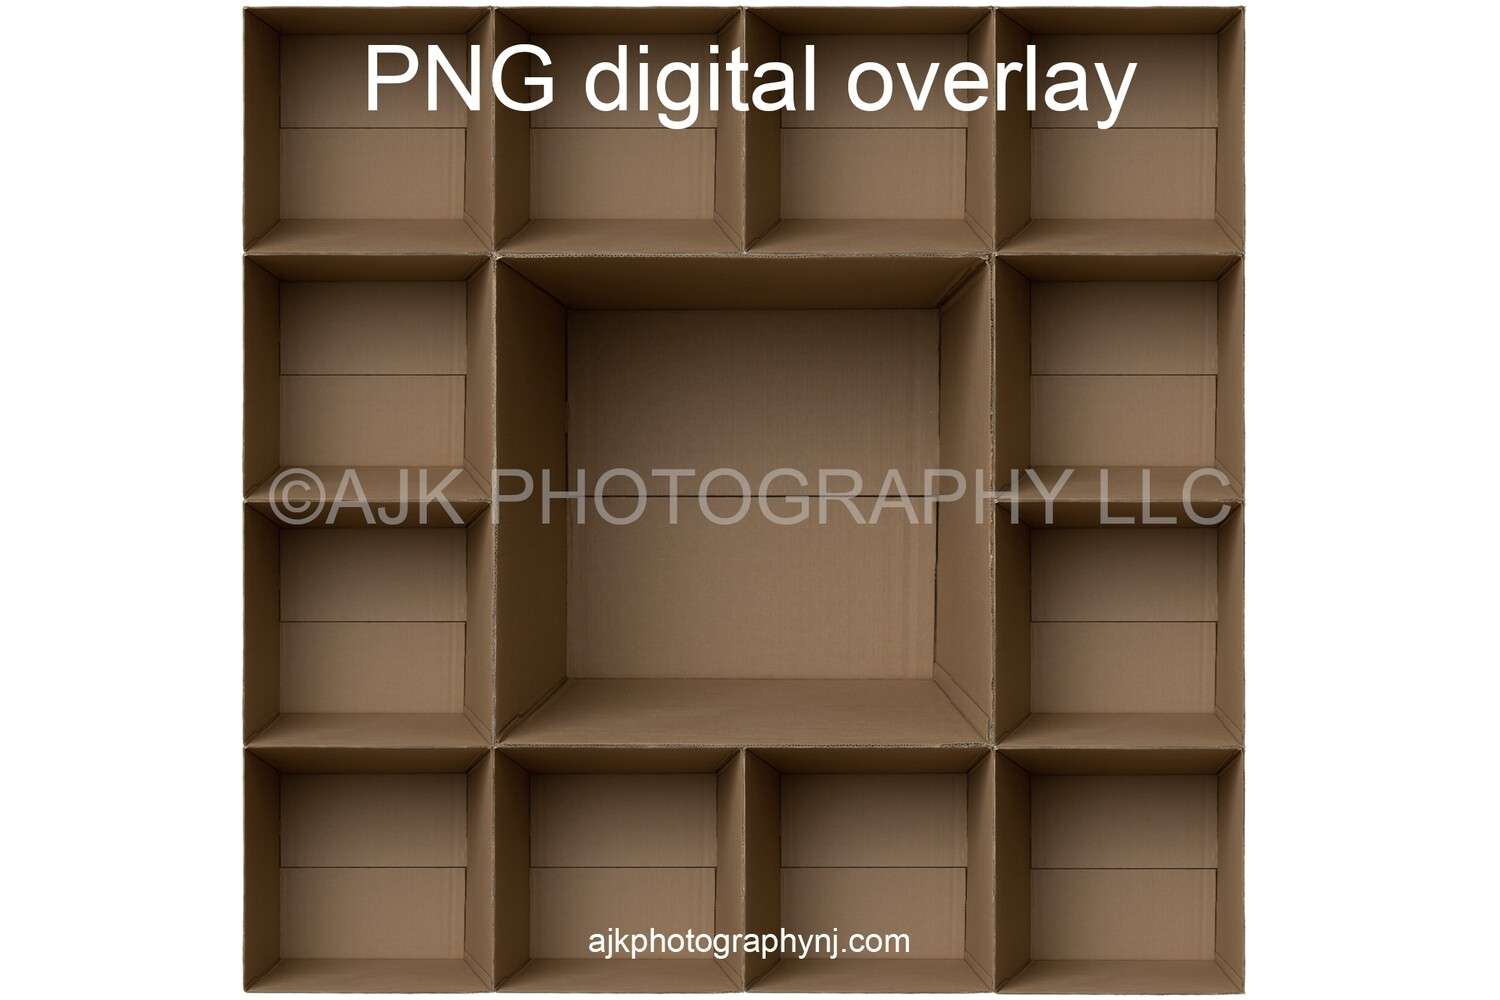 13 empty cardboard boxes template, inside the box, 12 students and 1 teacher, class photo template, PNG Digital Overlay